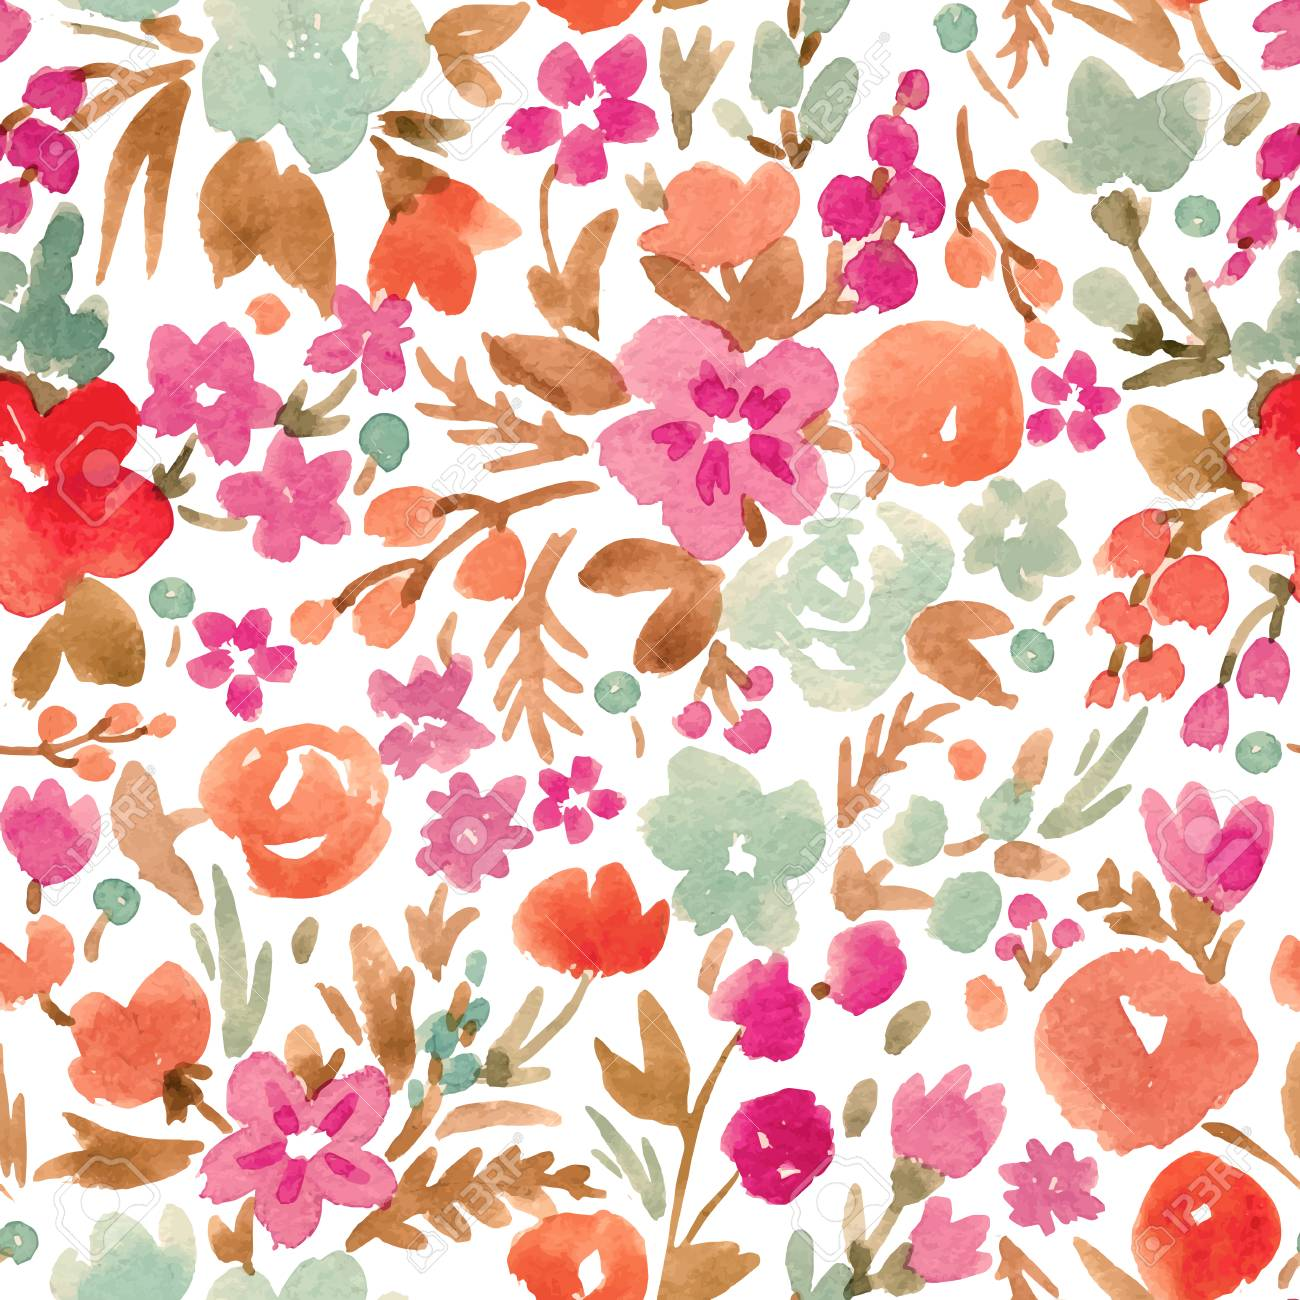 Watercolor vector abstract floral pattern - 80953177